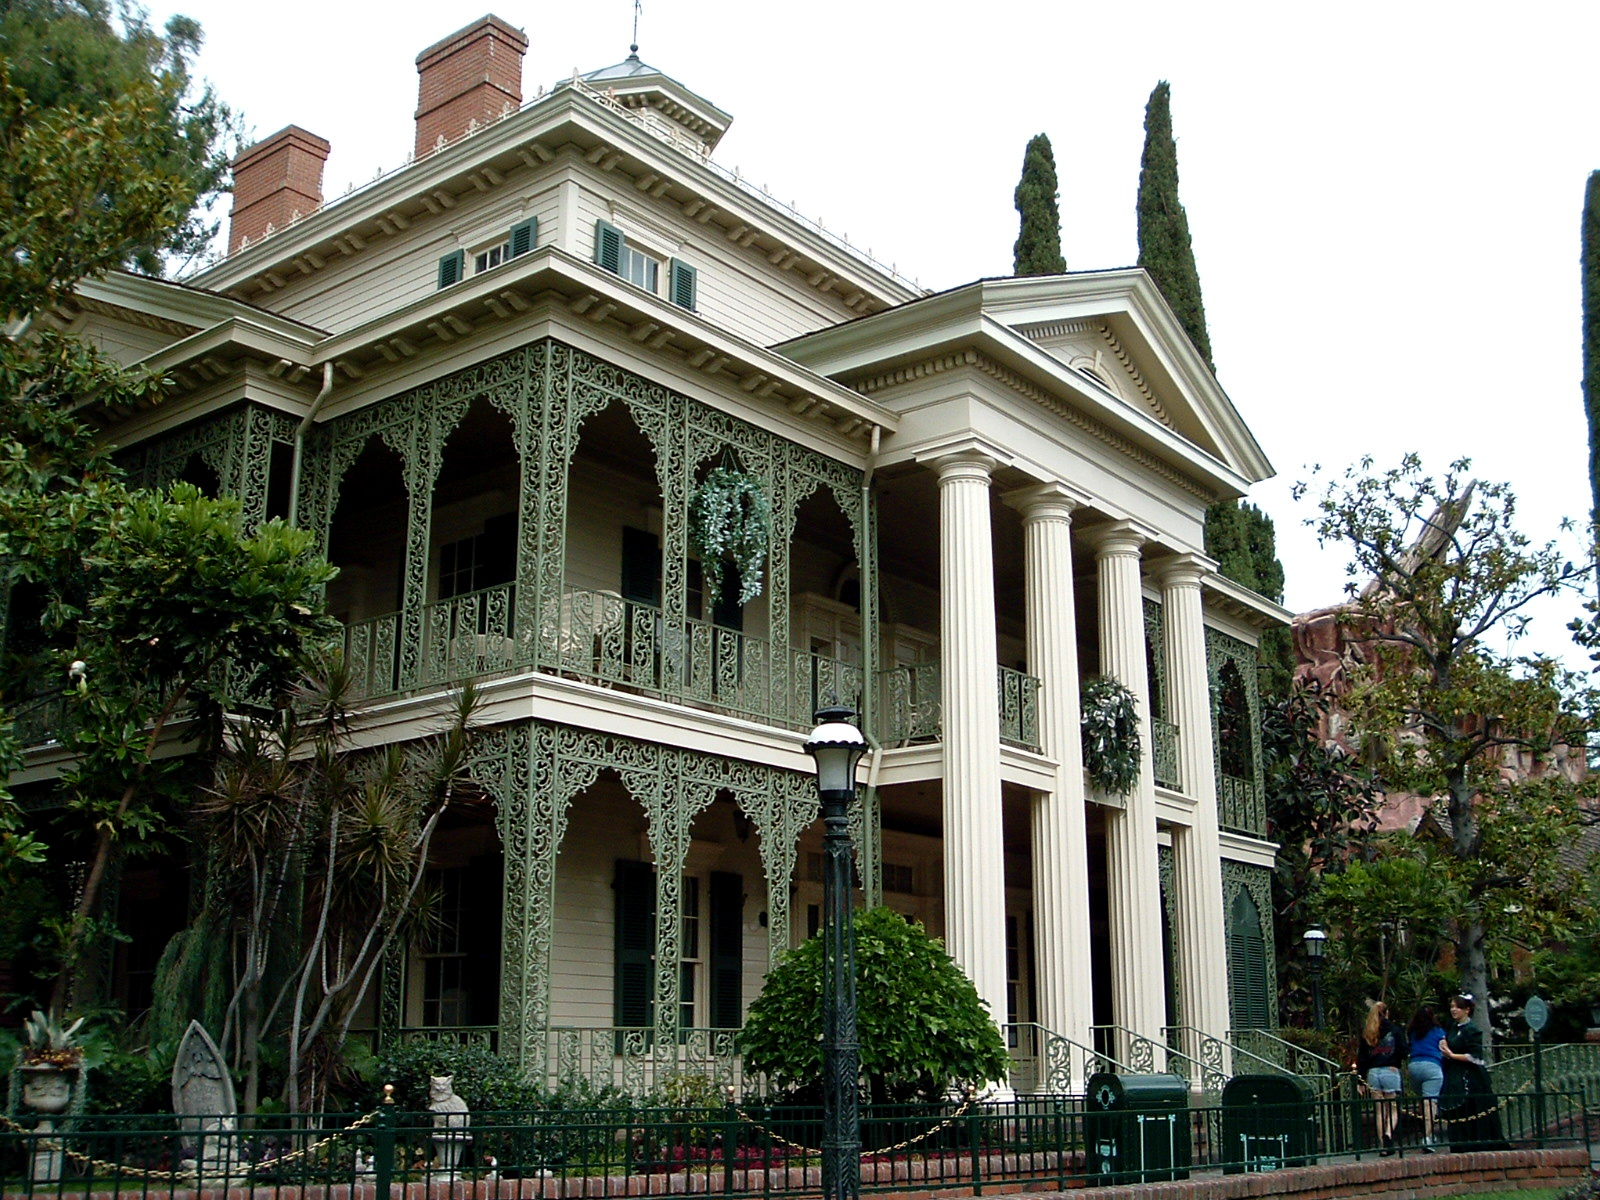 The Haunted Mansion Is A Dark Ride Located At Disneyland